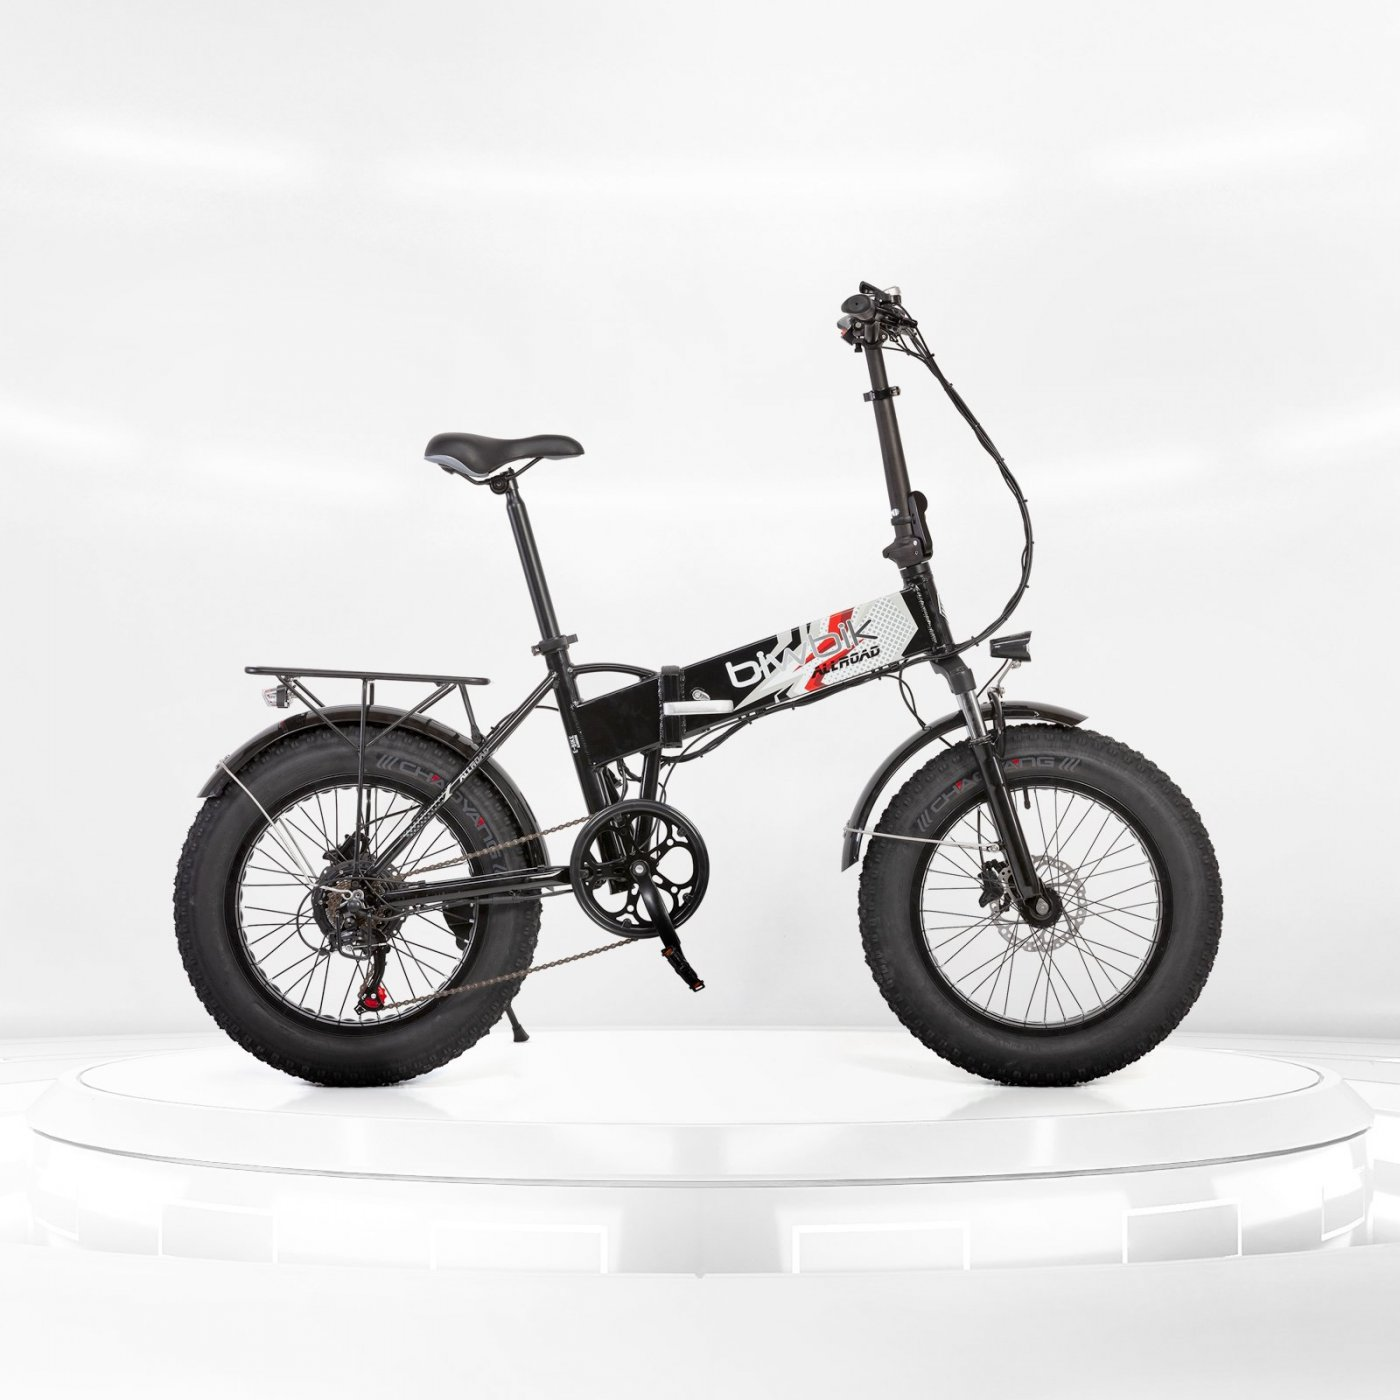 Biwbik All Road folding electric bike black